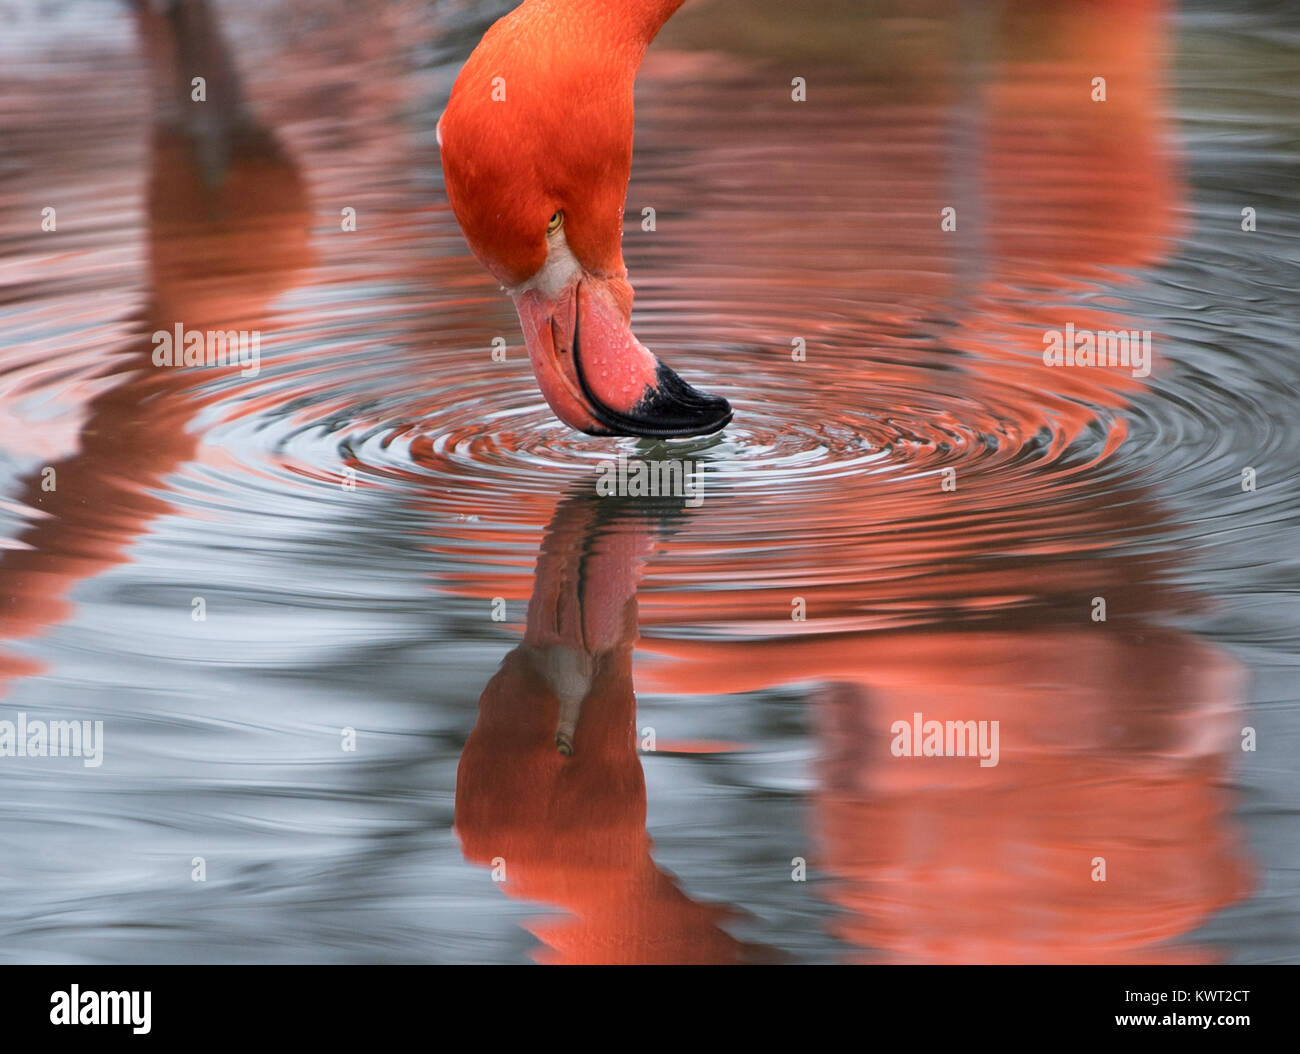 Dresden, Germany. 4th Jan, 2018. A flamingo drinks water from a pond in the flamingo enclosure at the zoo in Dresden, - Stock Image